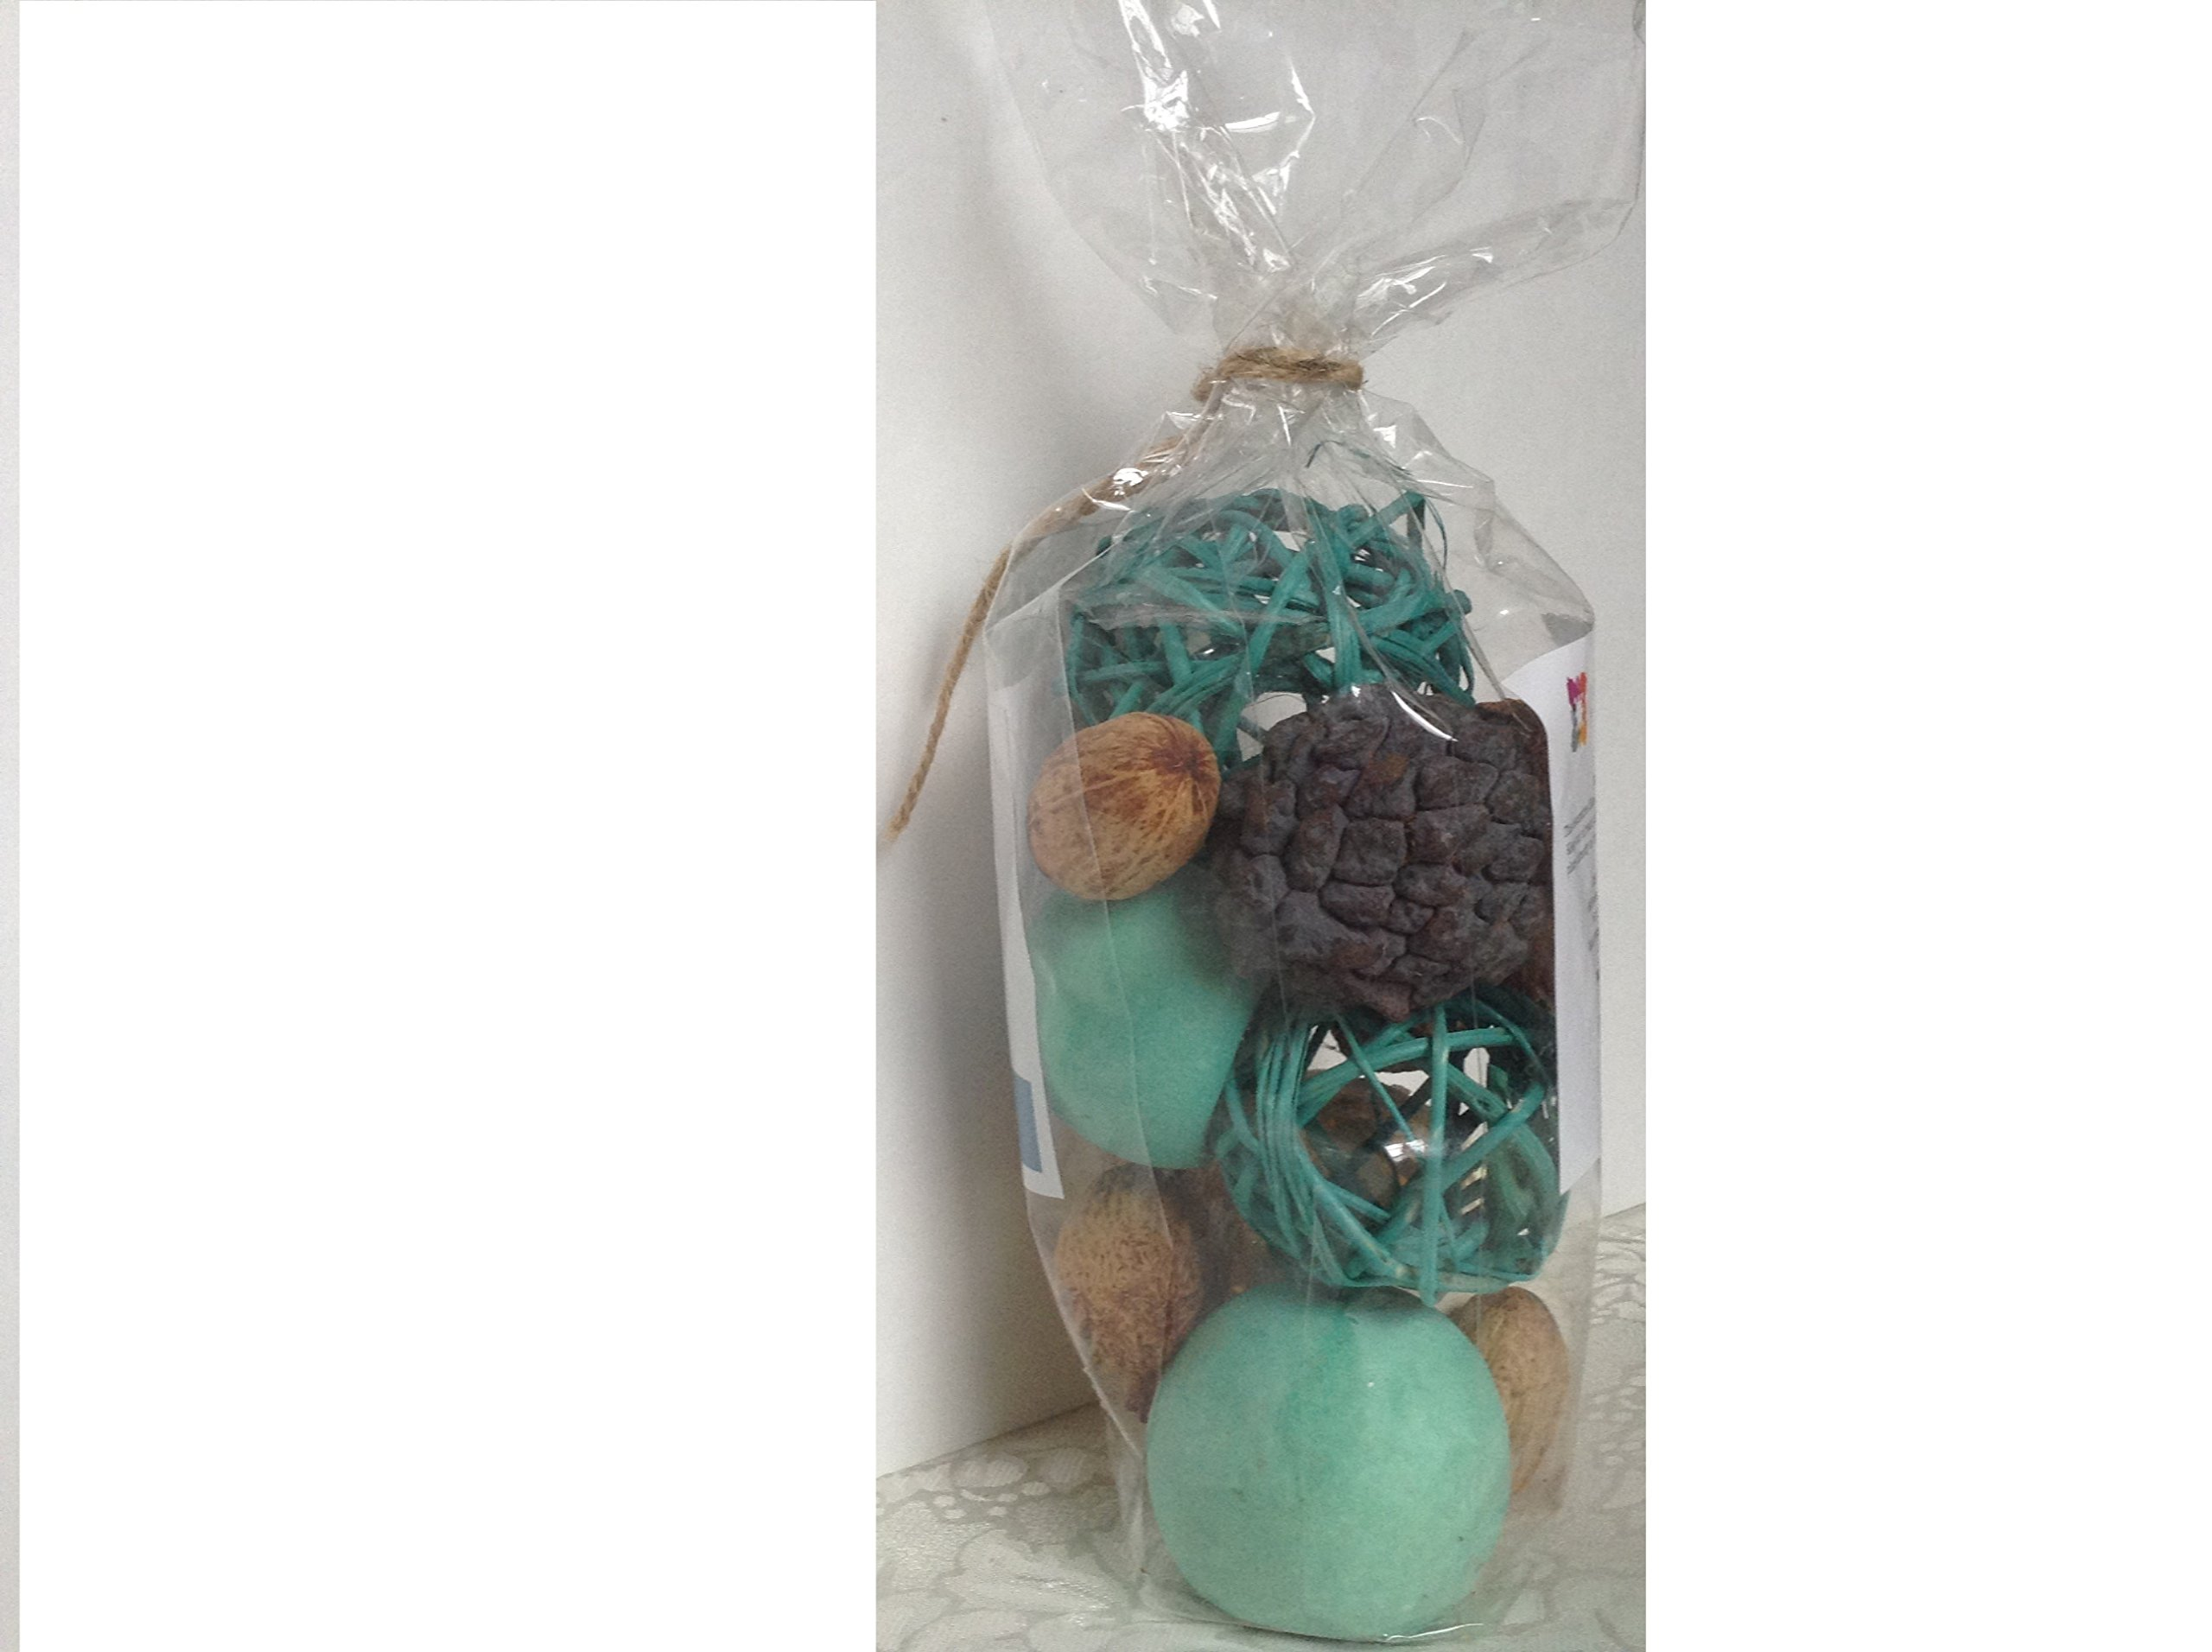 Decorative Vase and Bowl Filler for Your Home Decor (Turquoise Blue)